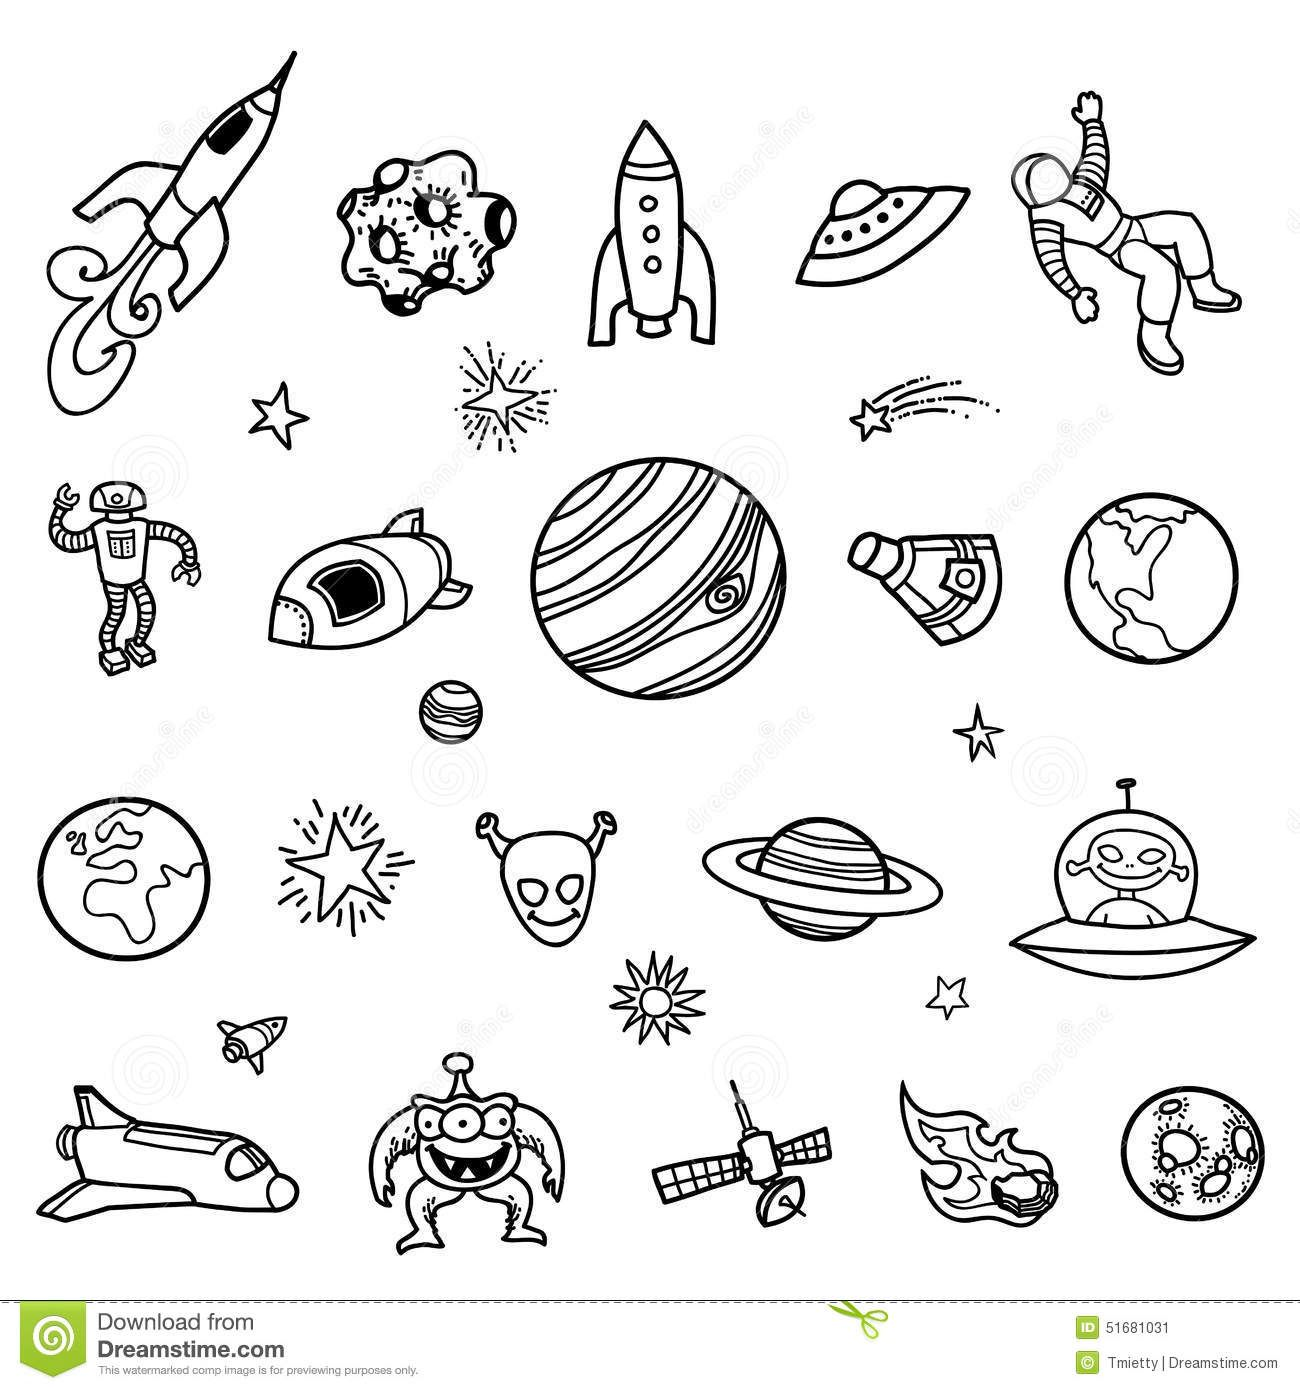 Image Result For Space Doodles